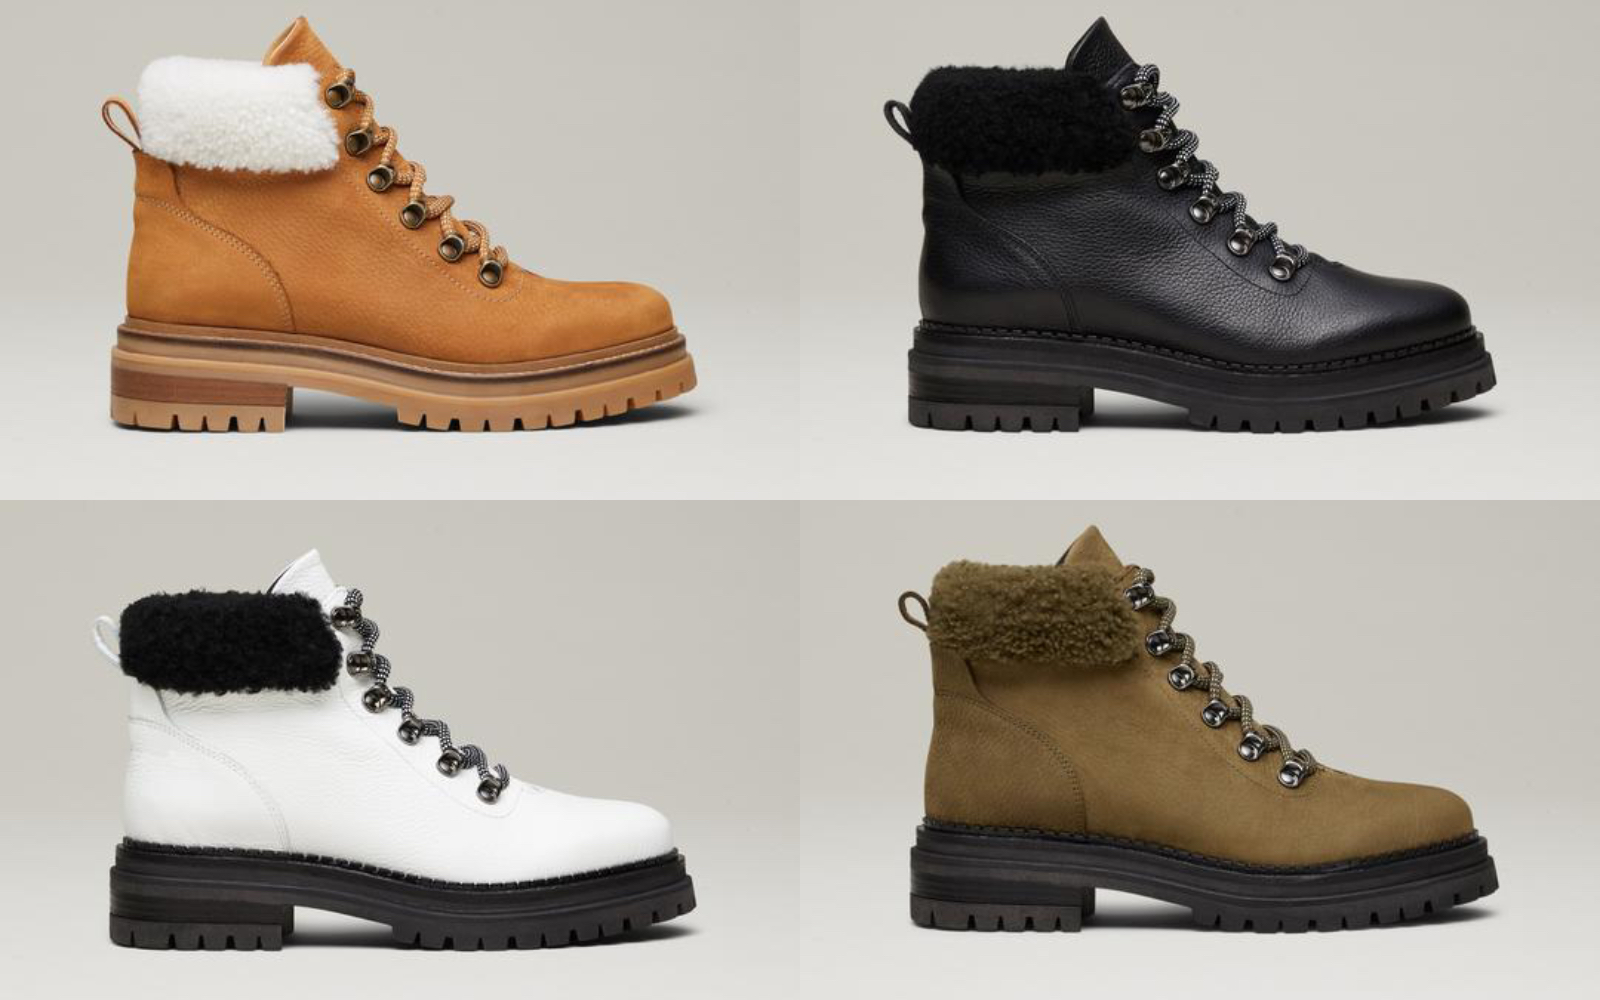 The Alpi Shearling Boot